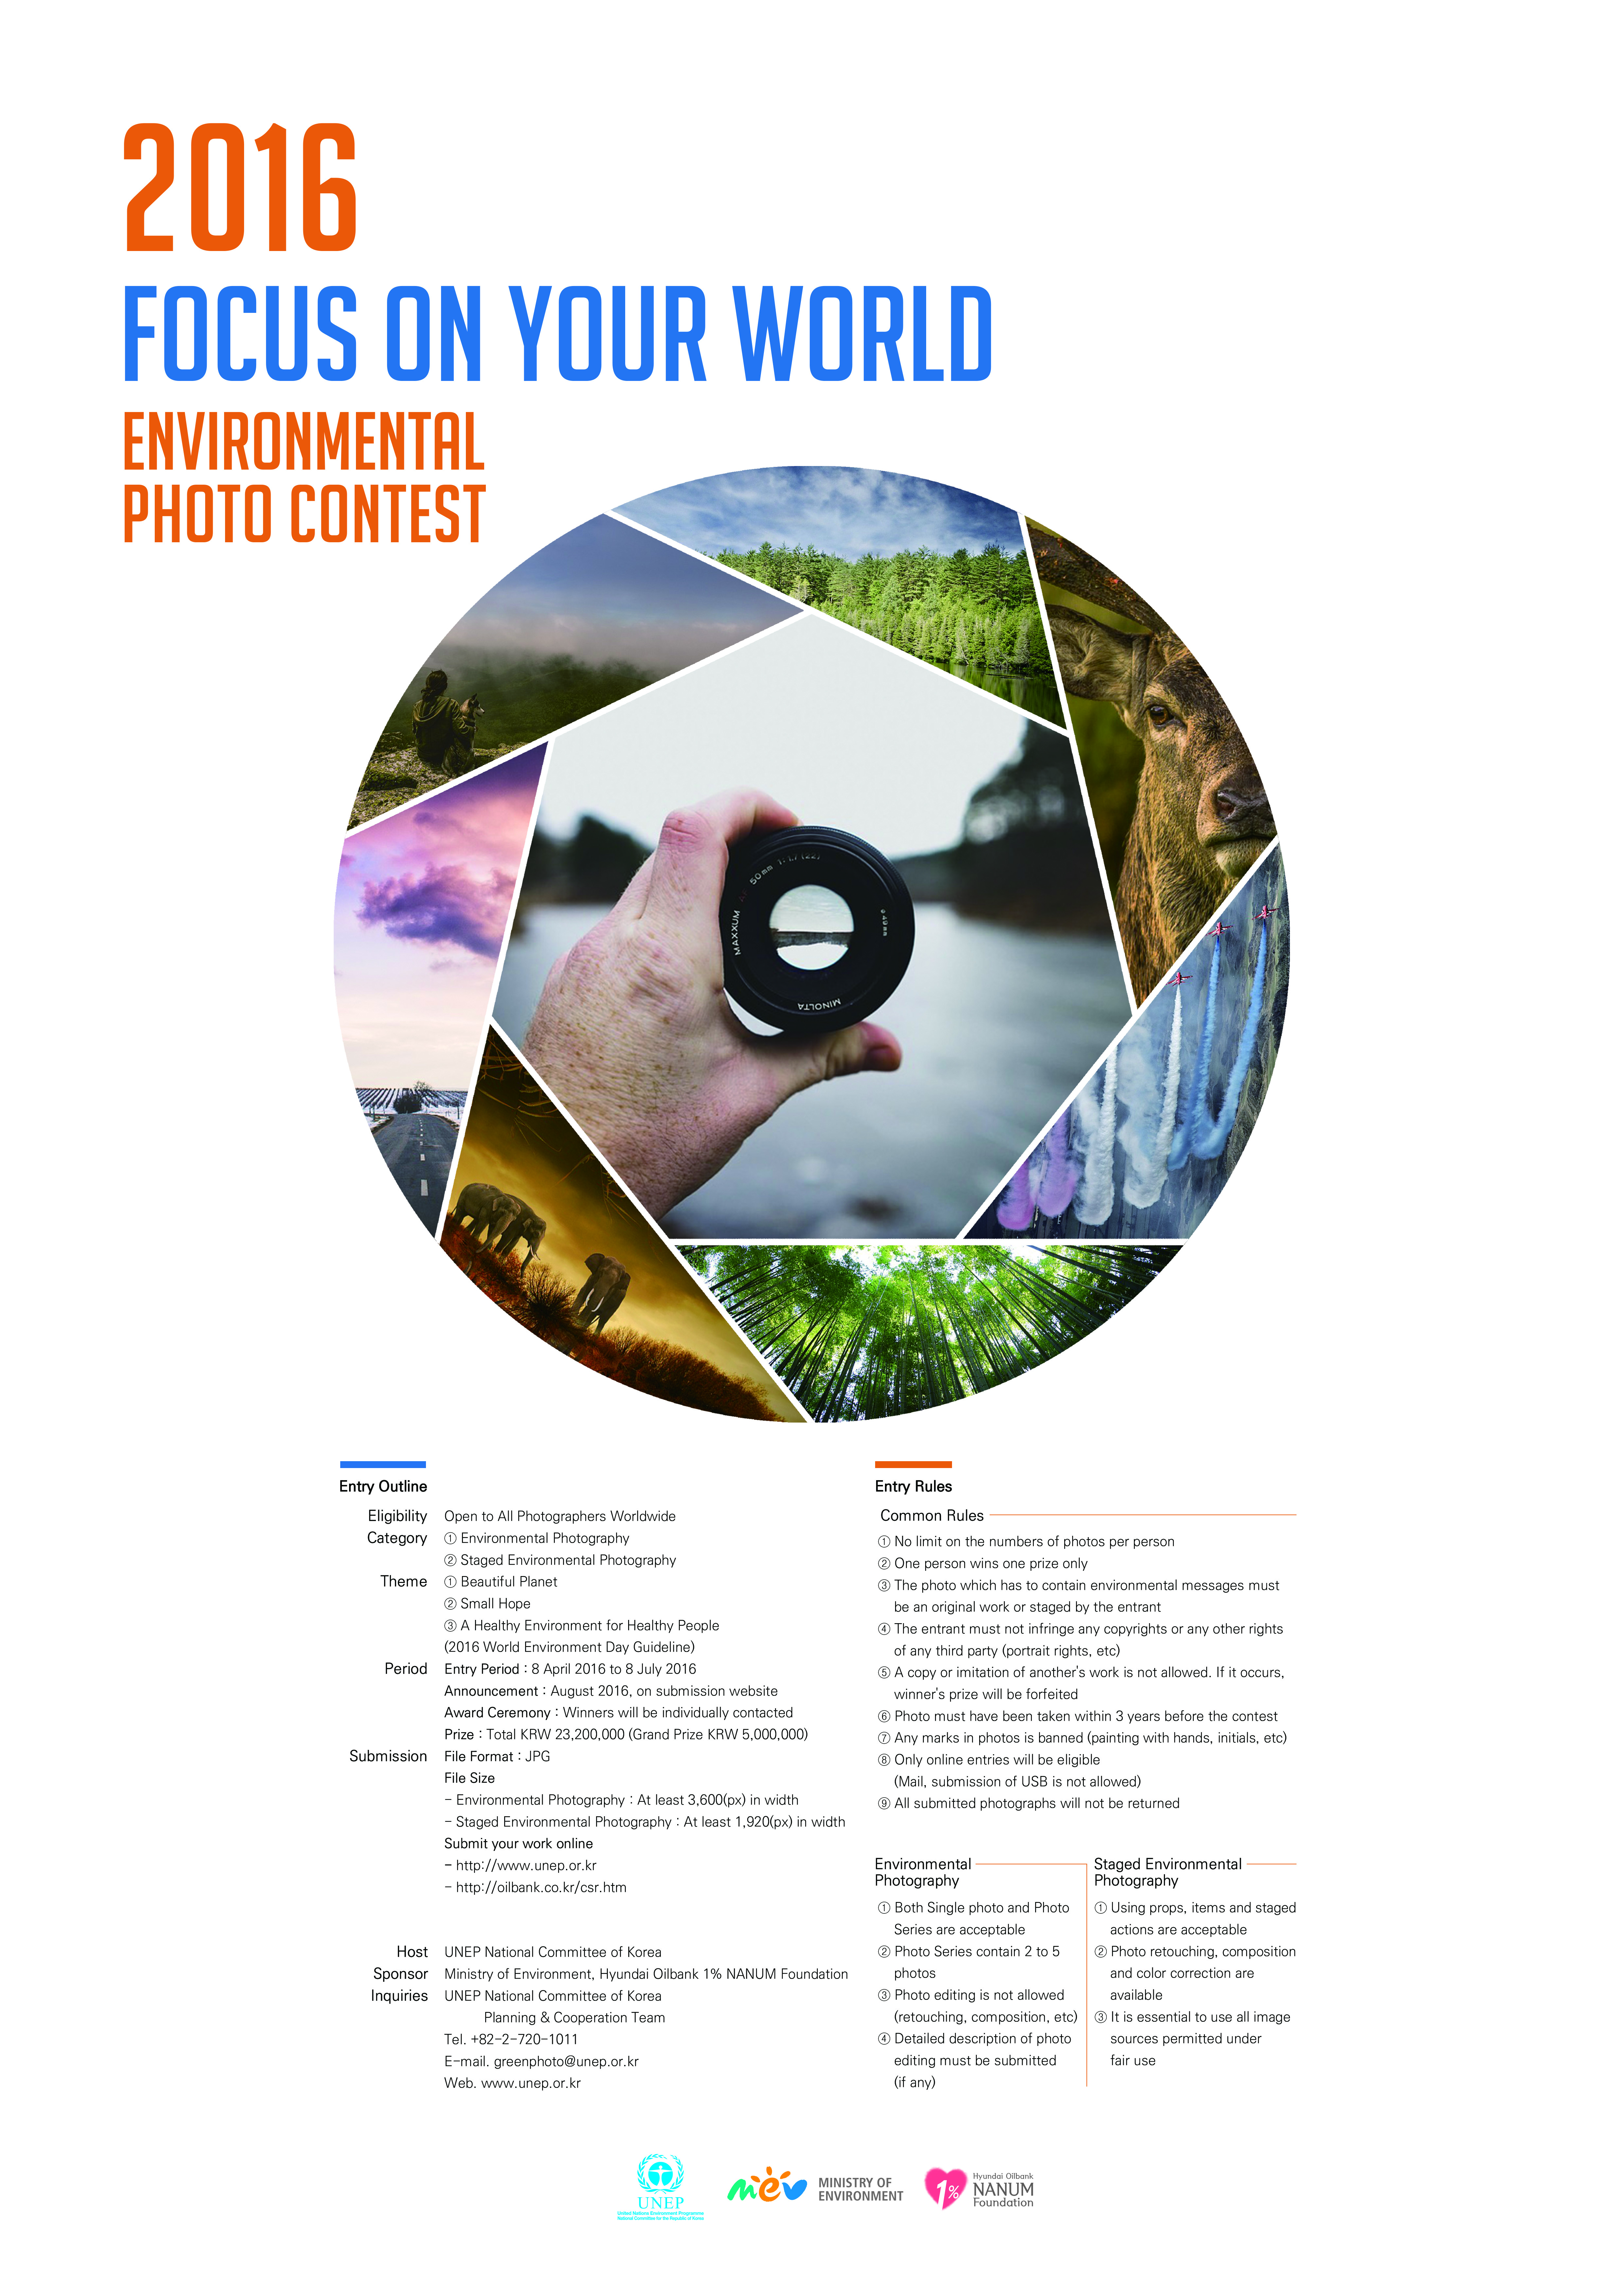 2016 Focus on Your World Environmental Photo Contest - logo